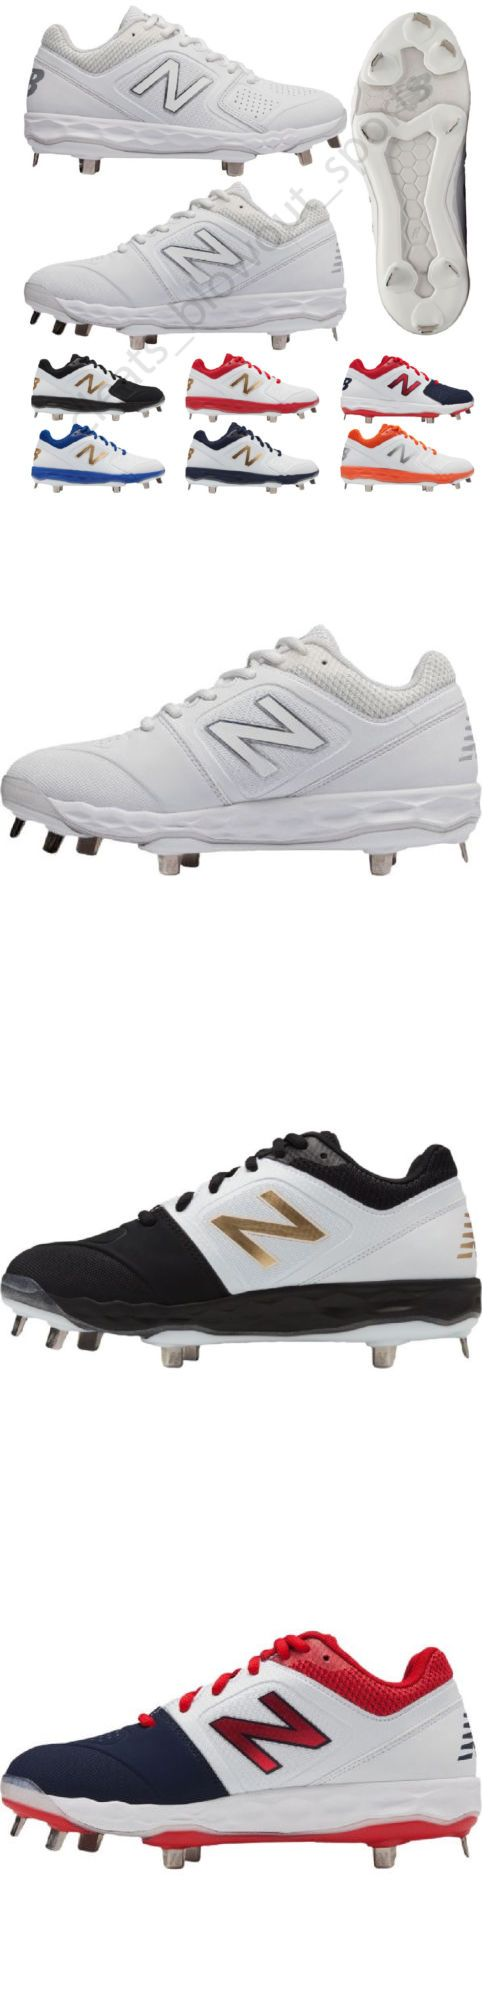 4835cf0aee10a Clothing Shoes and Accessories 159052: 2019 New Balance Velo 1 Women S Metal  Softball Cleats Ladies Fastpitch Spike -> BUY IT NOW ONLY: $89.99 on #eBay  ...